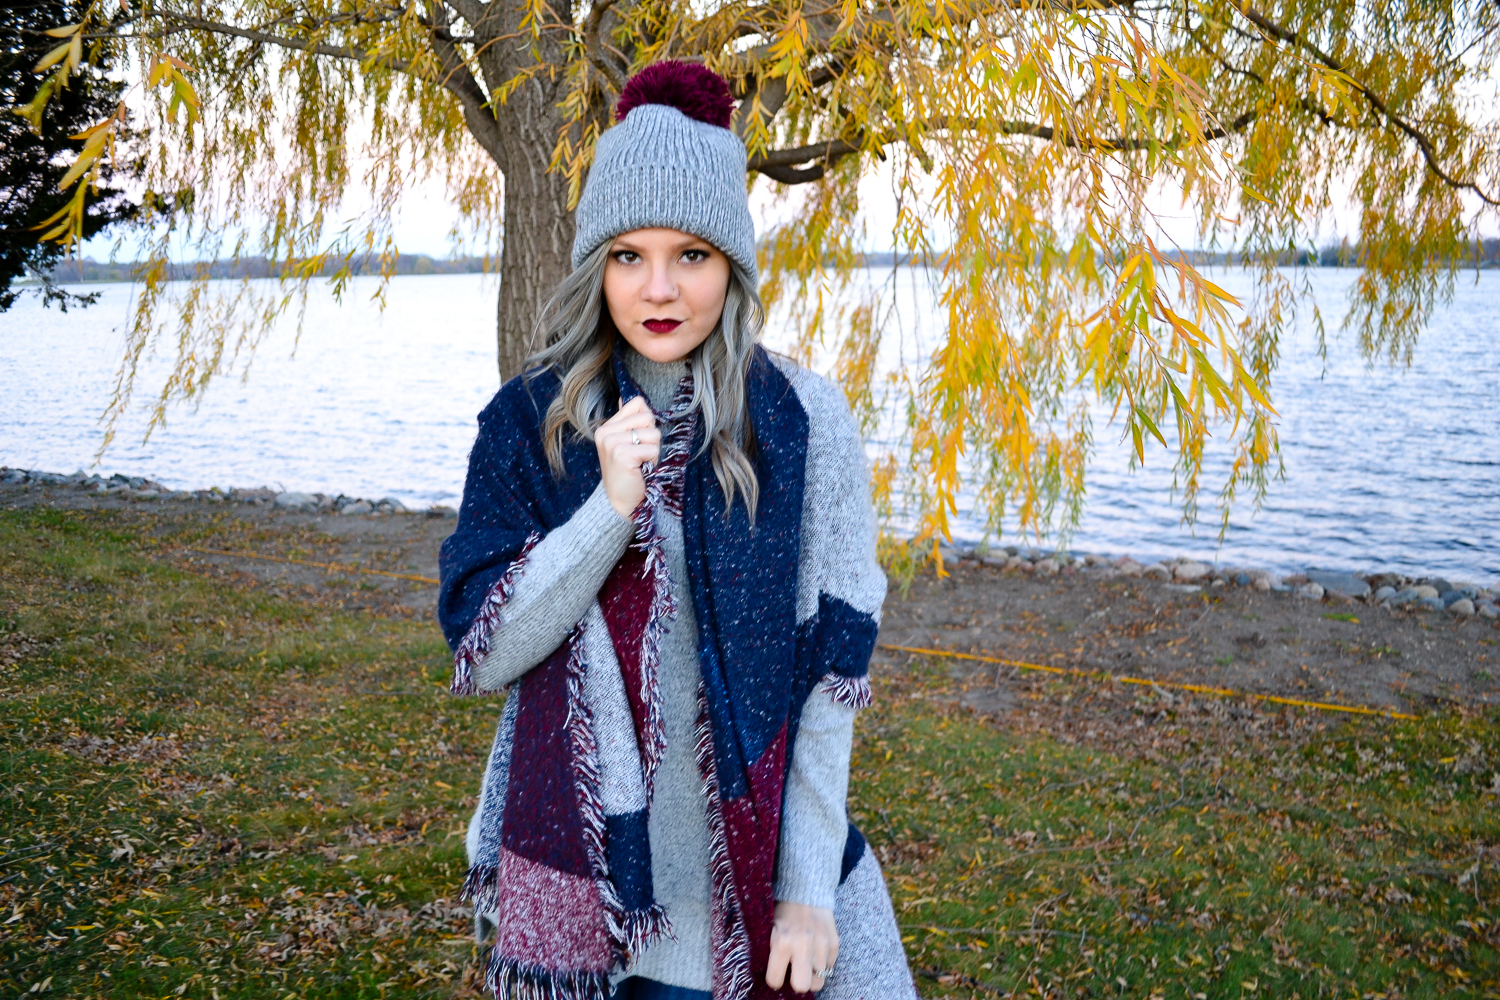 Greay and Maroon Beanie_Blanket Scarf.jpg